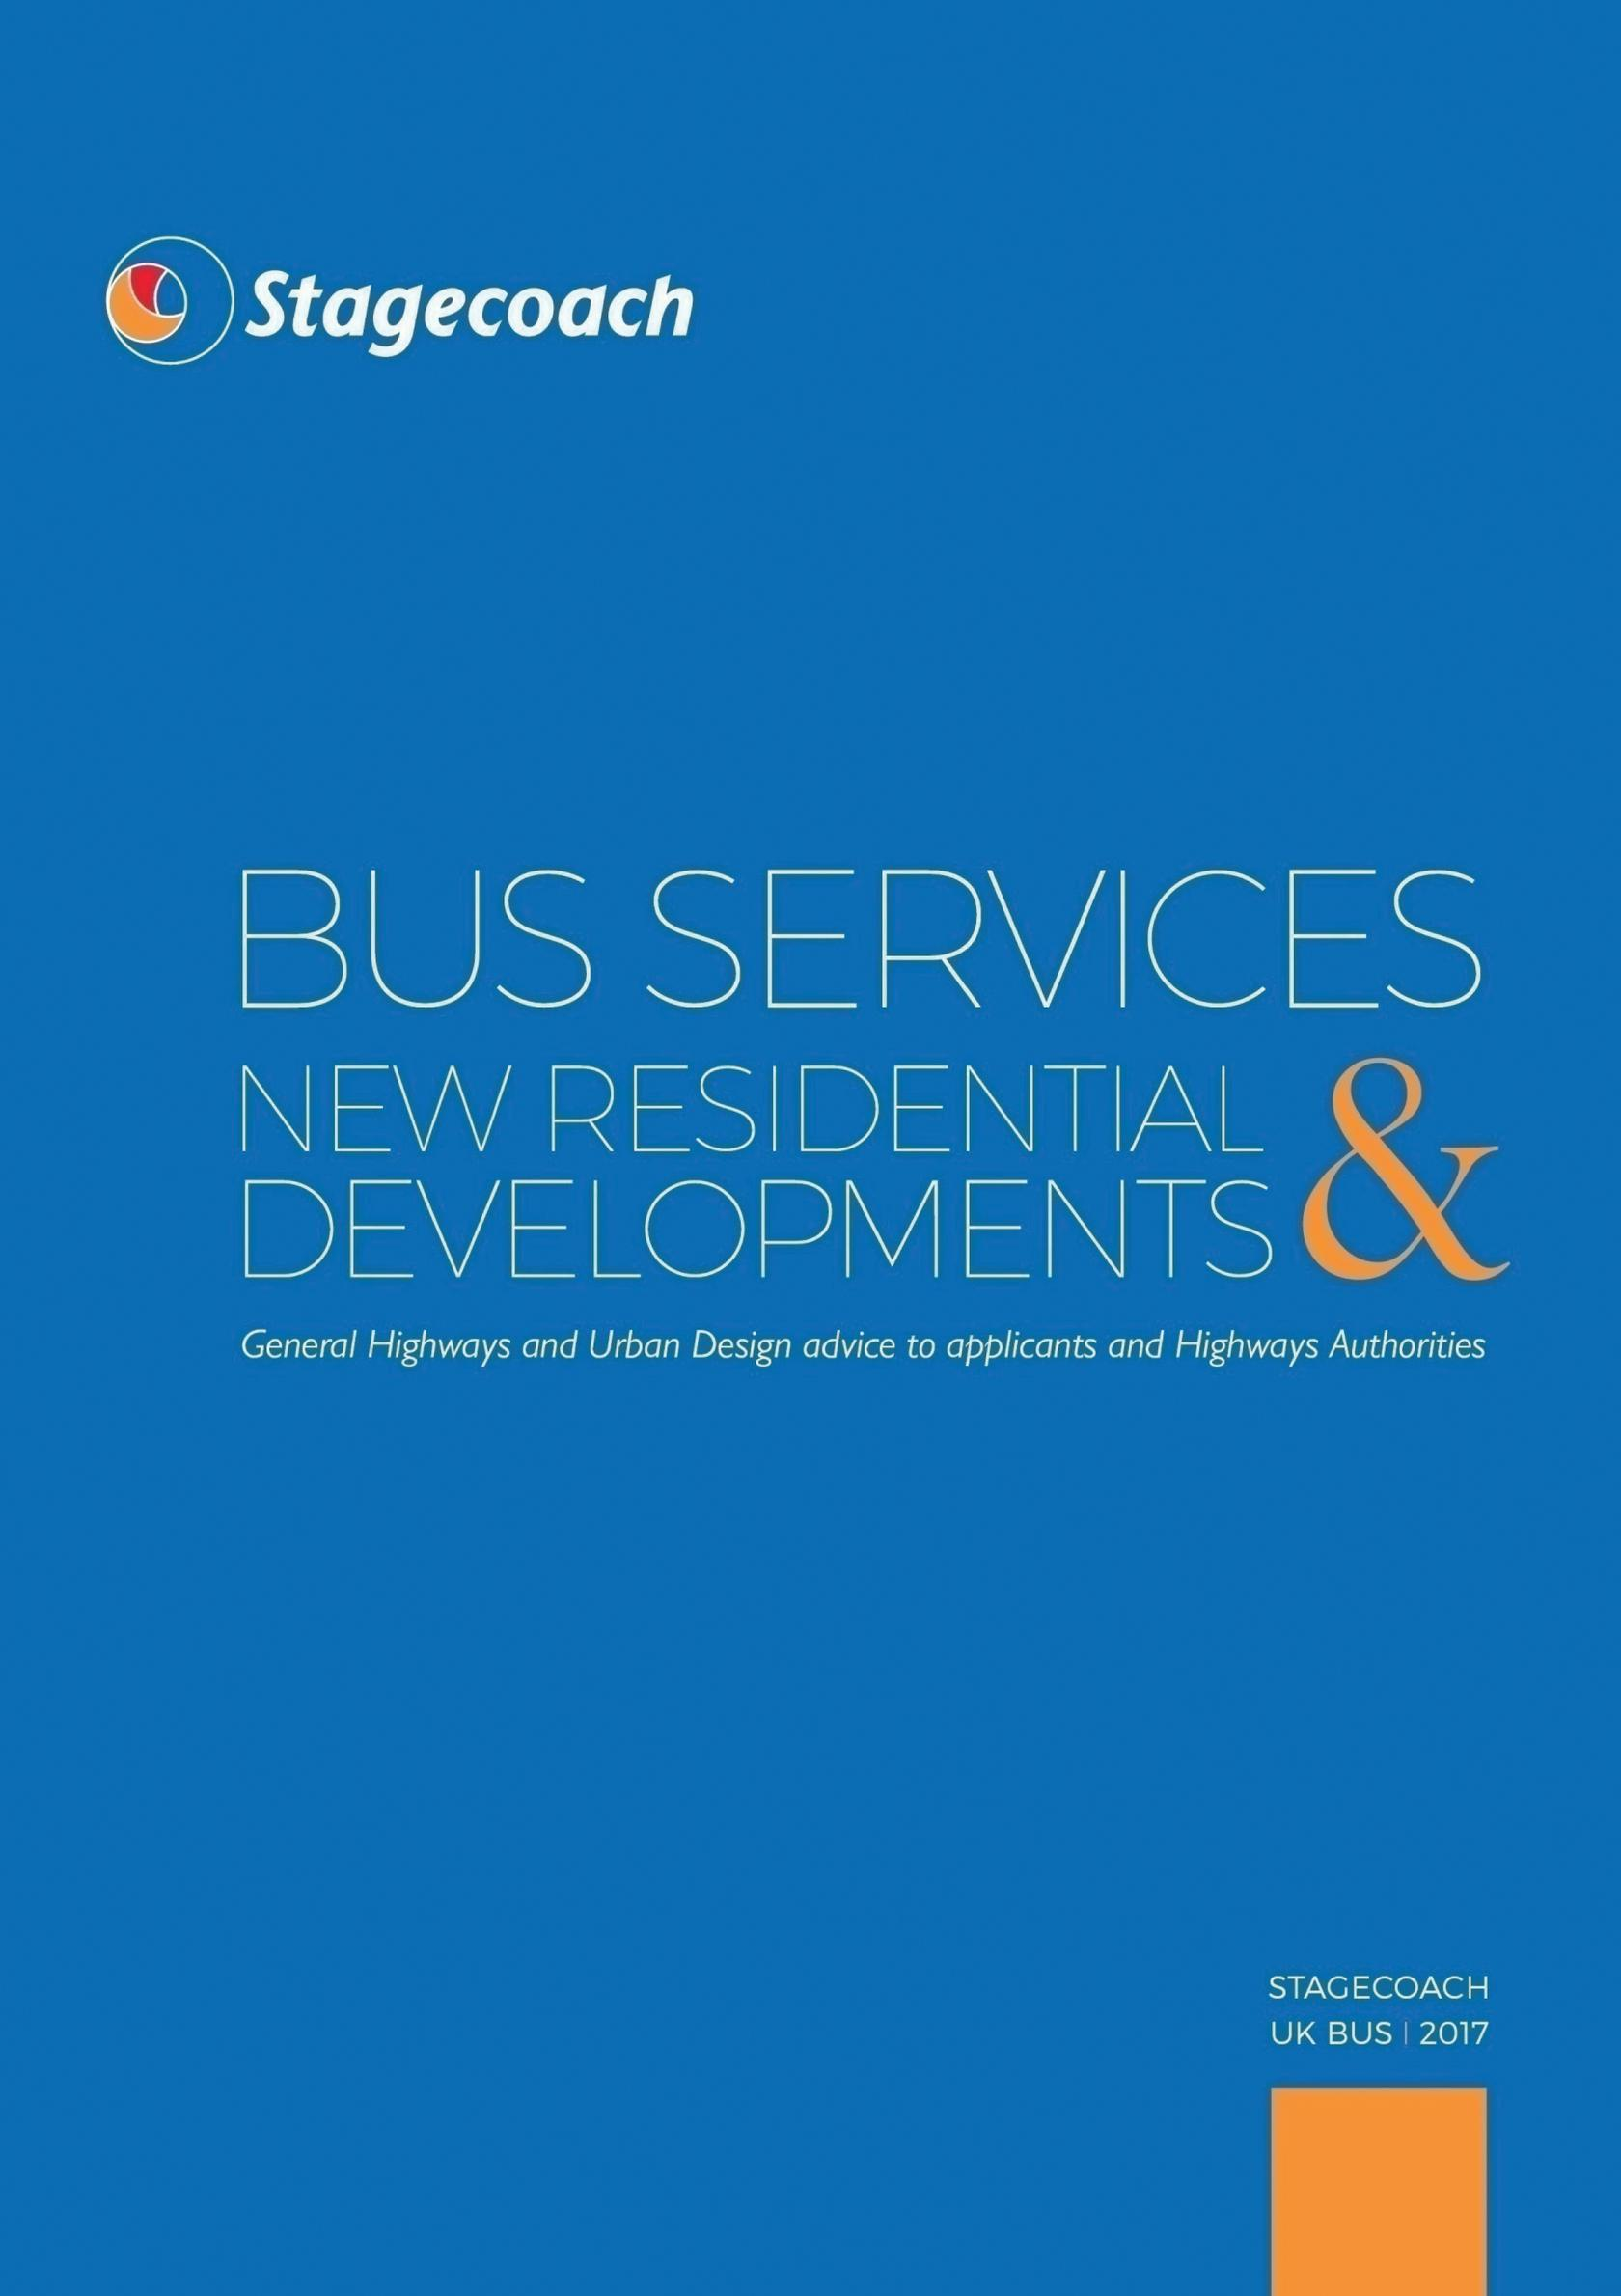 Guide promotes bus-friendly new housing developments